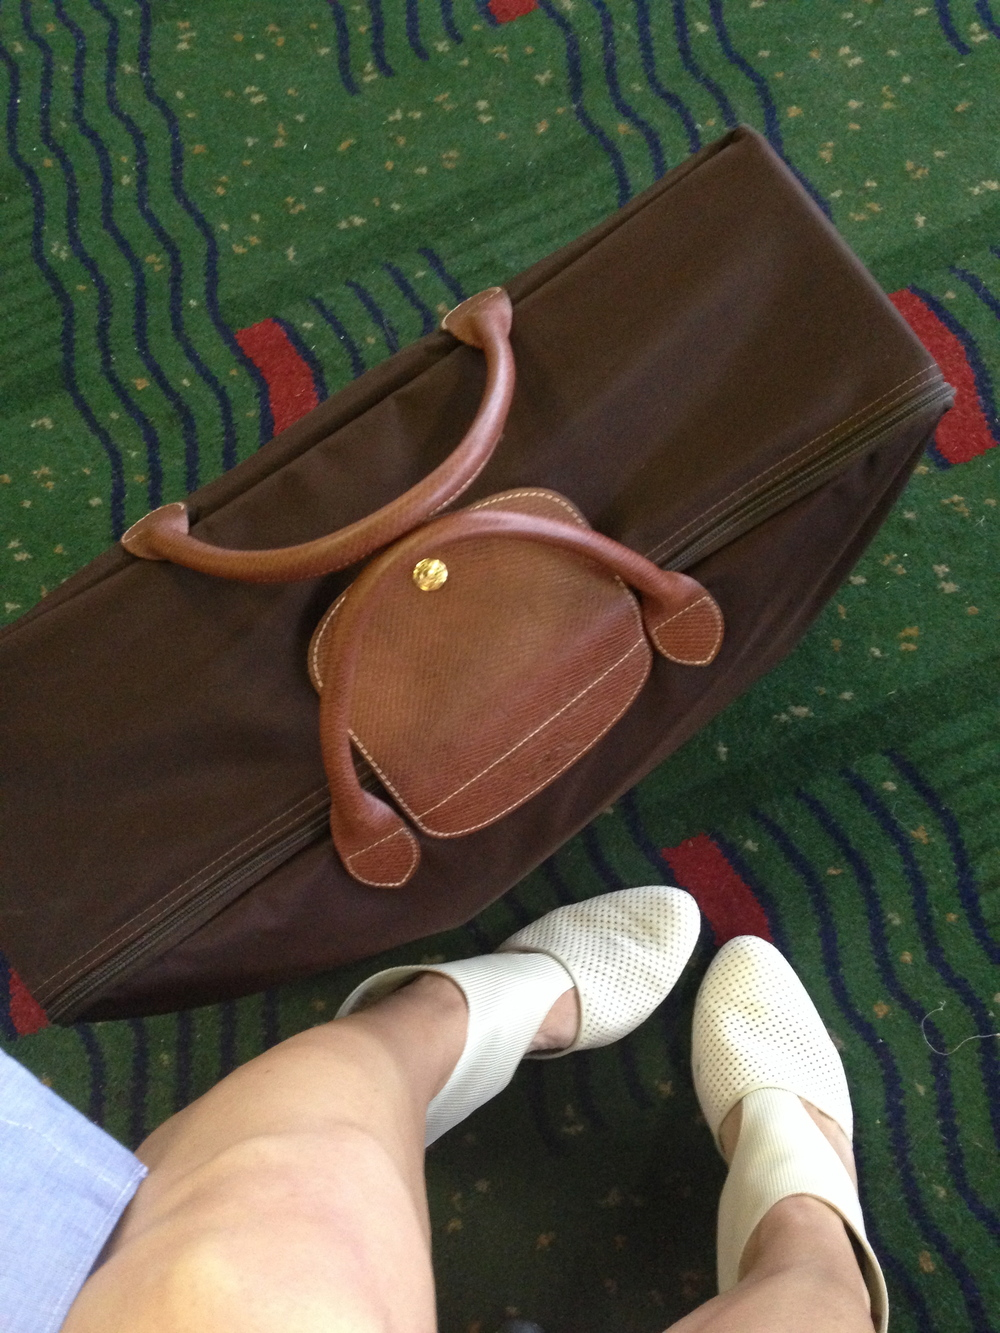 Longchamp chocolate suitcase